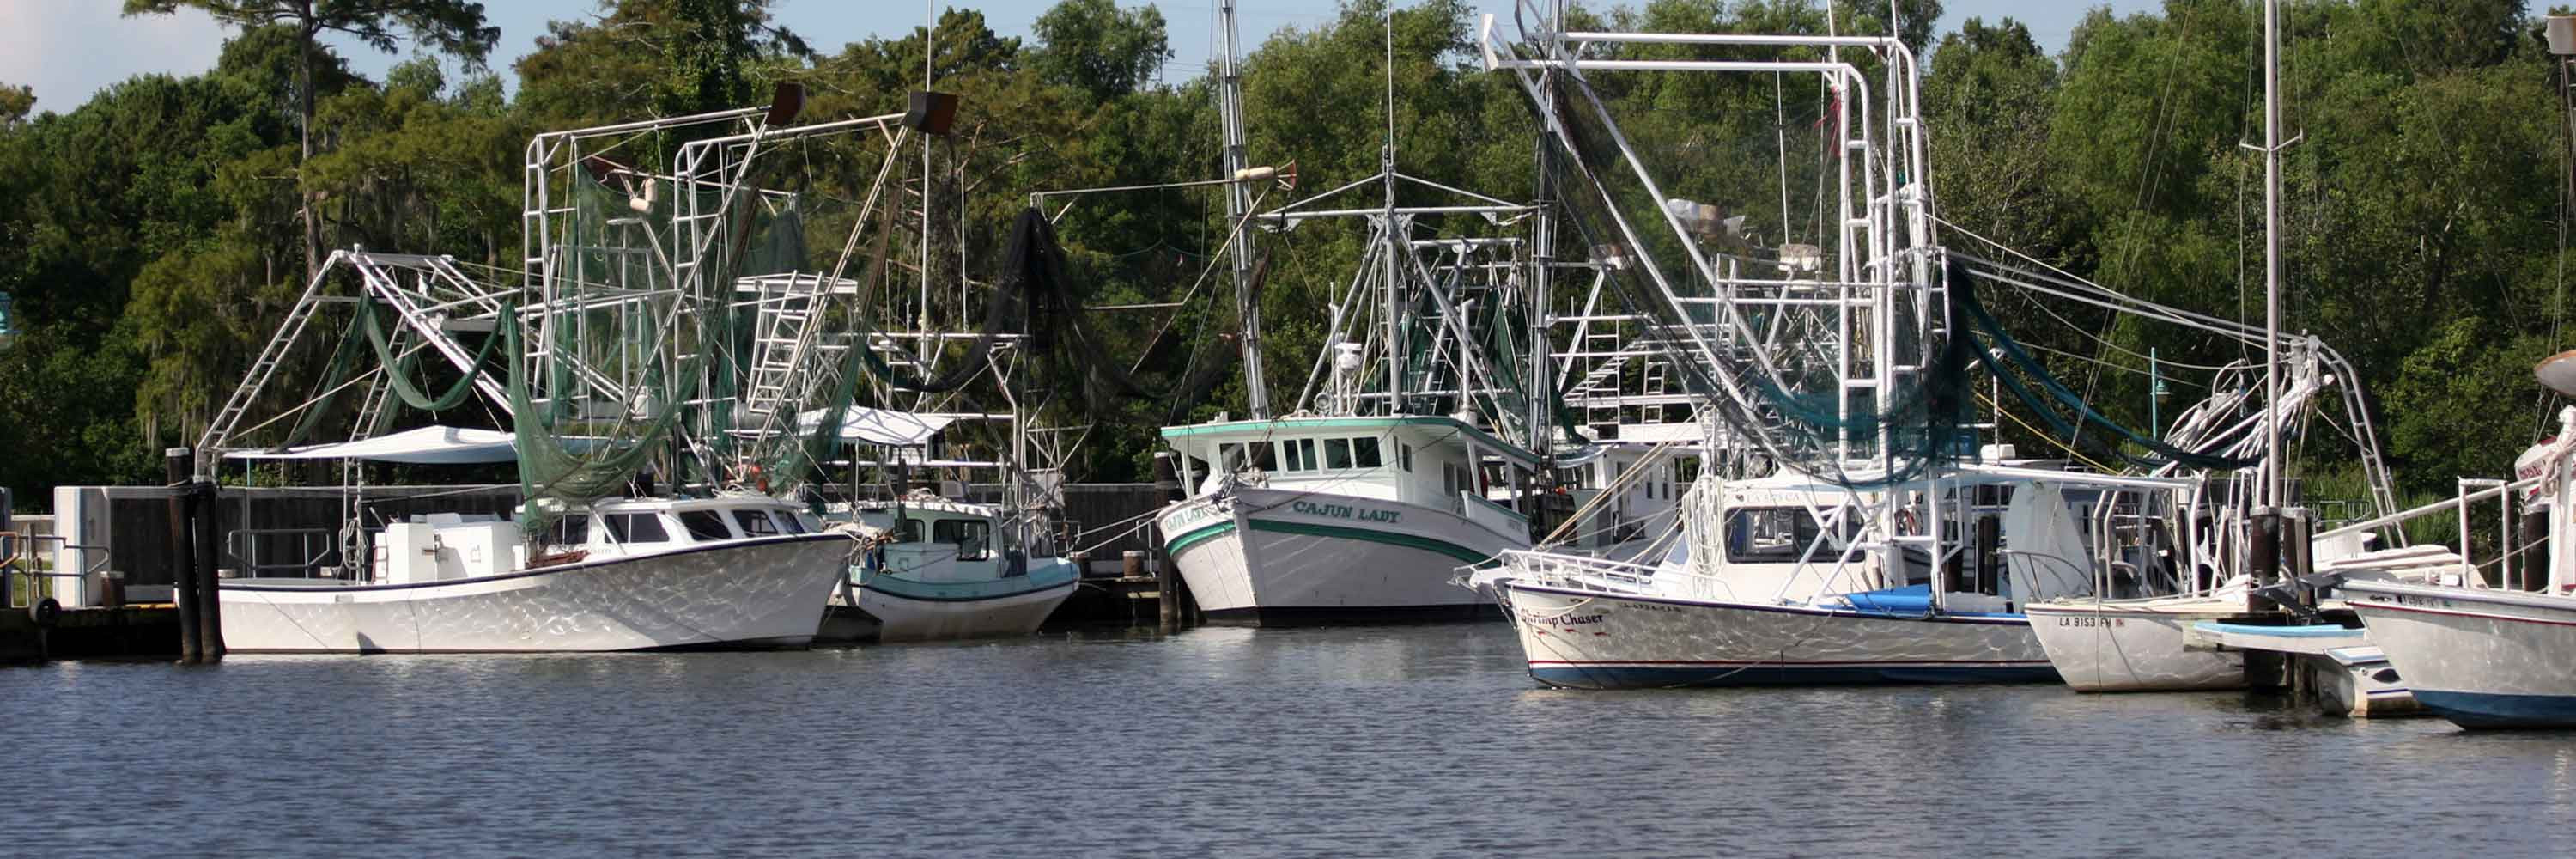 Shrimp-Boats-3